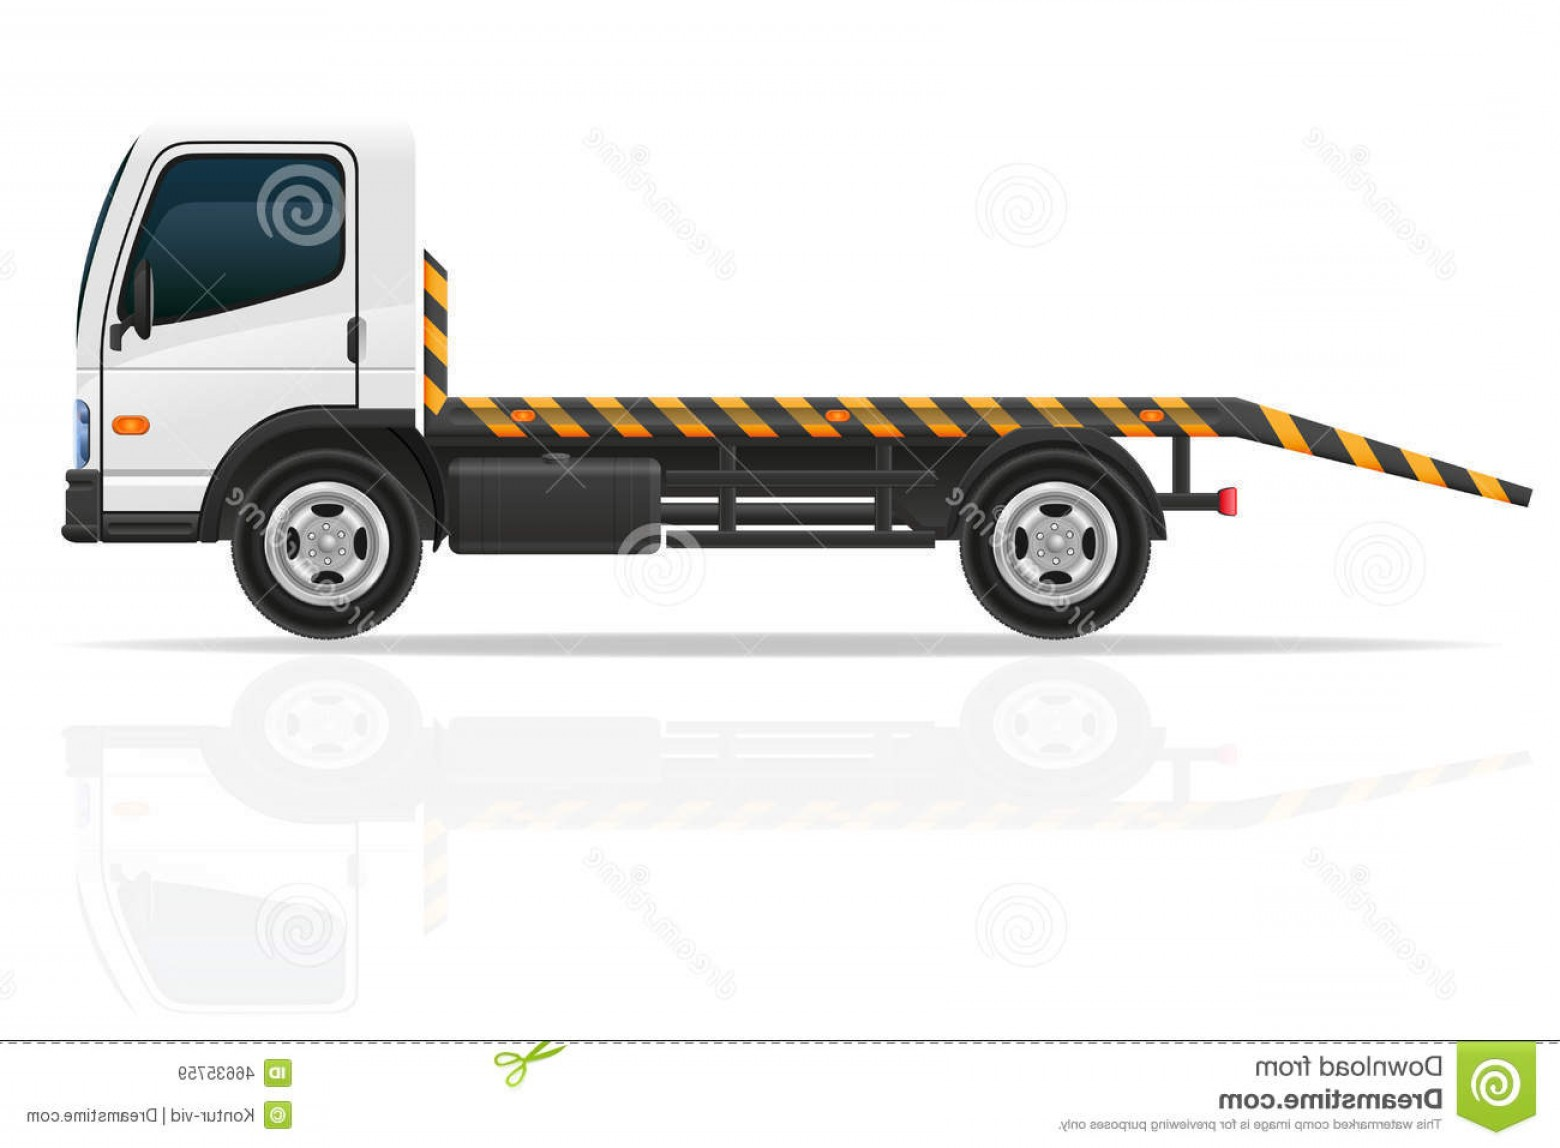 Gruas Truck Vector: Stock Illustration Tow Truck Transportation Faults Emergency Cars Vector Il Illustration White Background Image